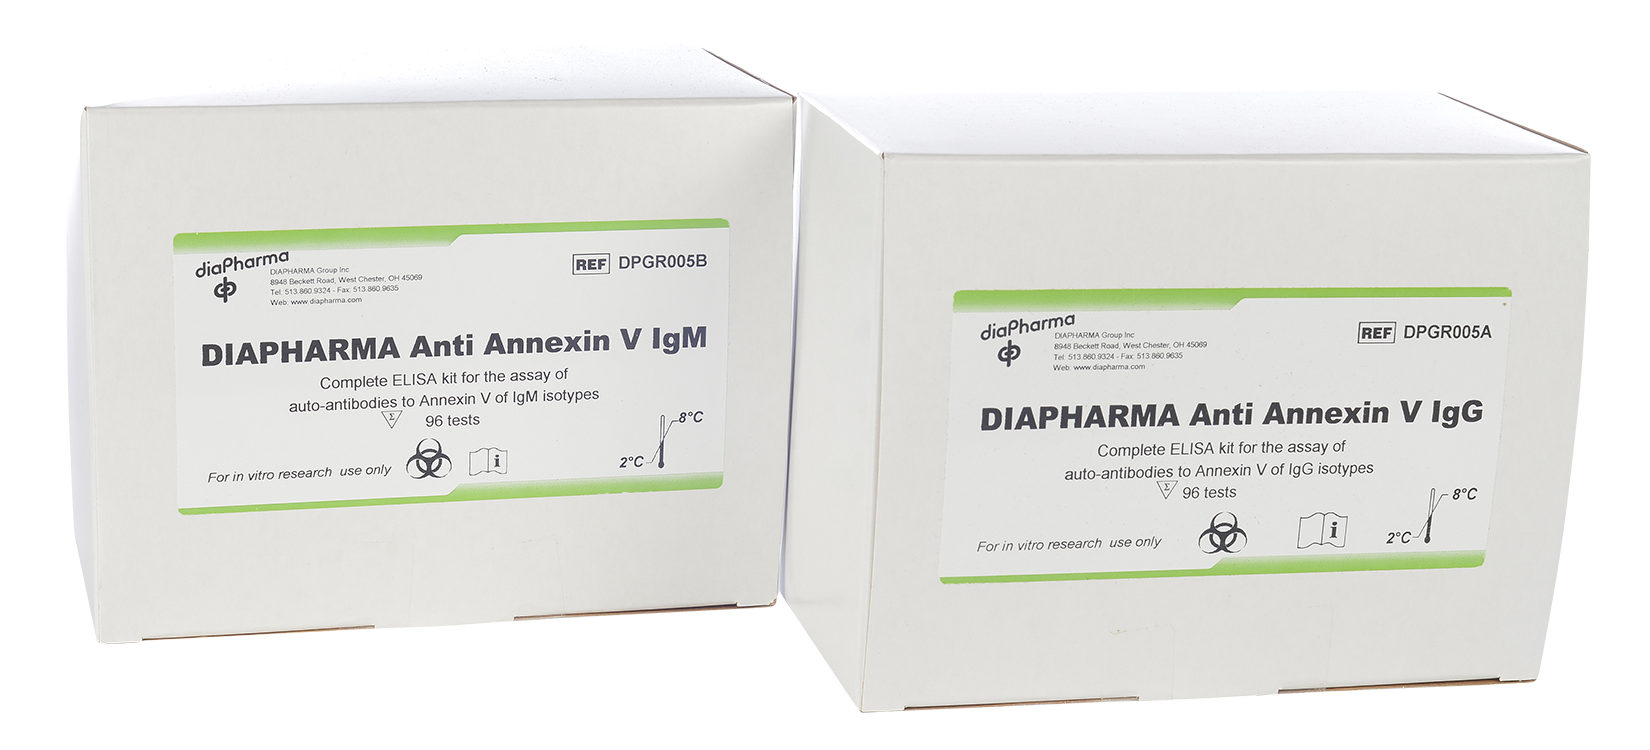 anti-annexin v igg igm ELISA assay test kit